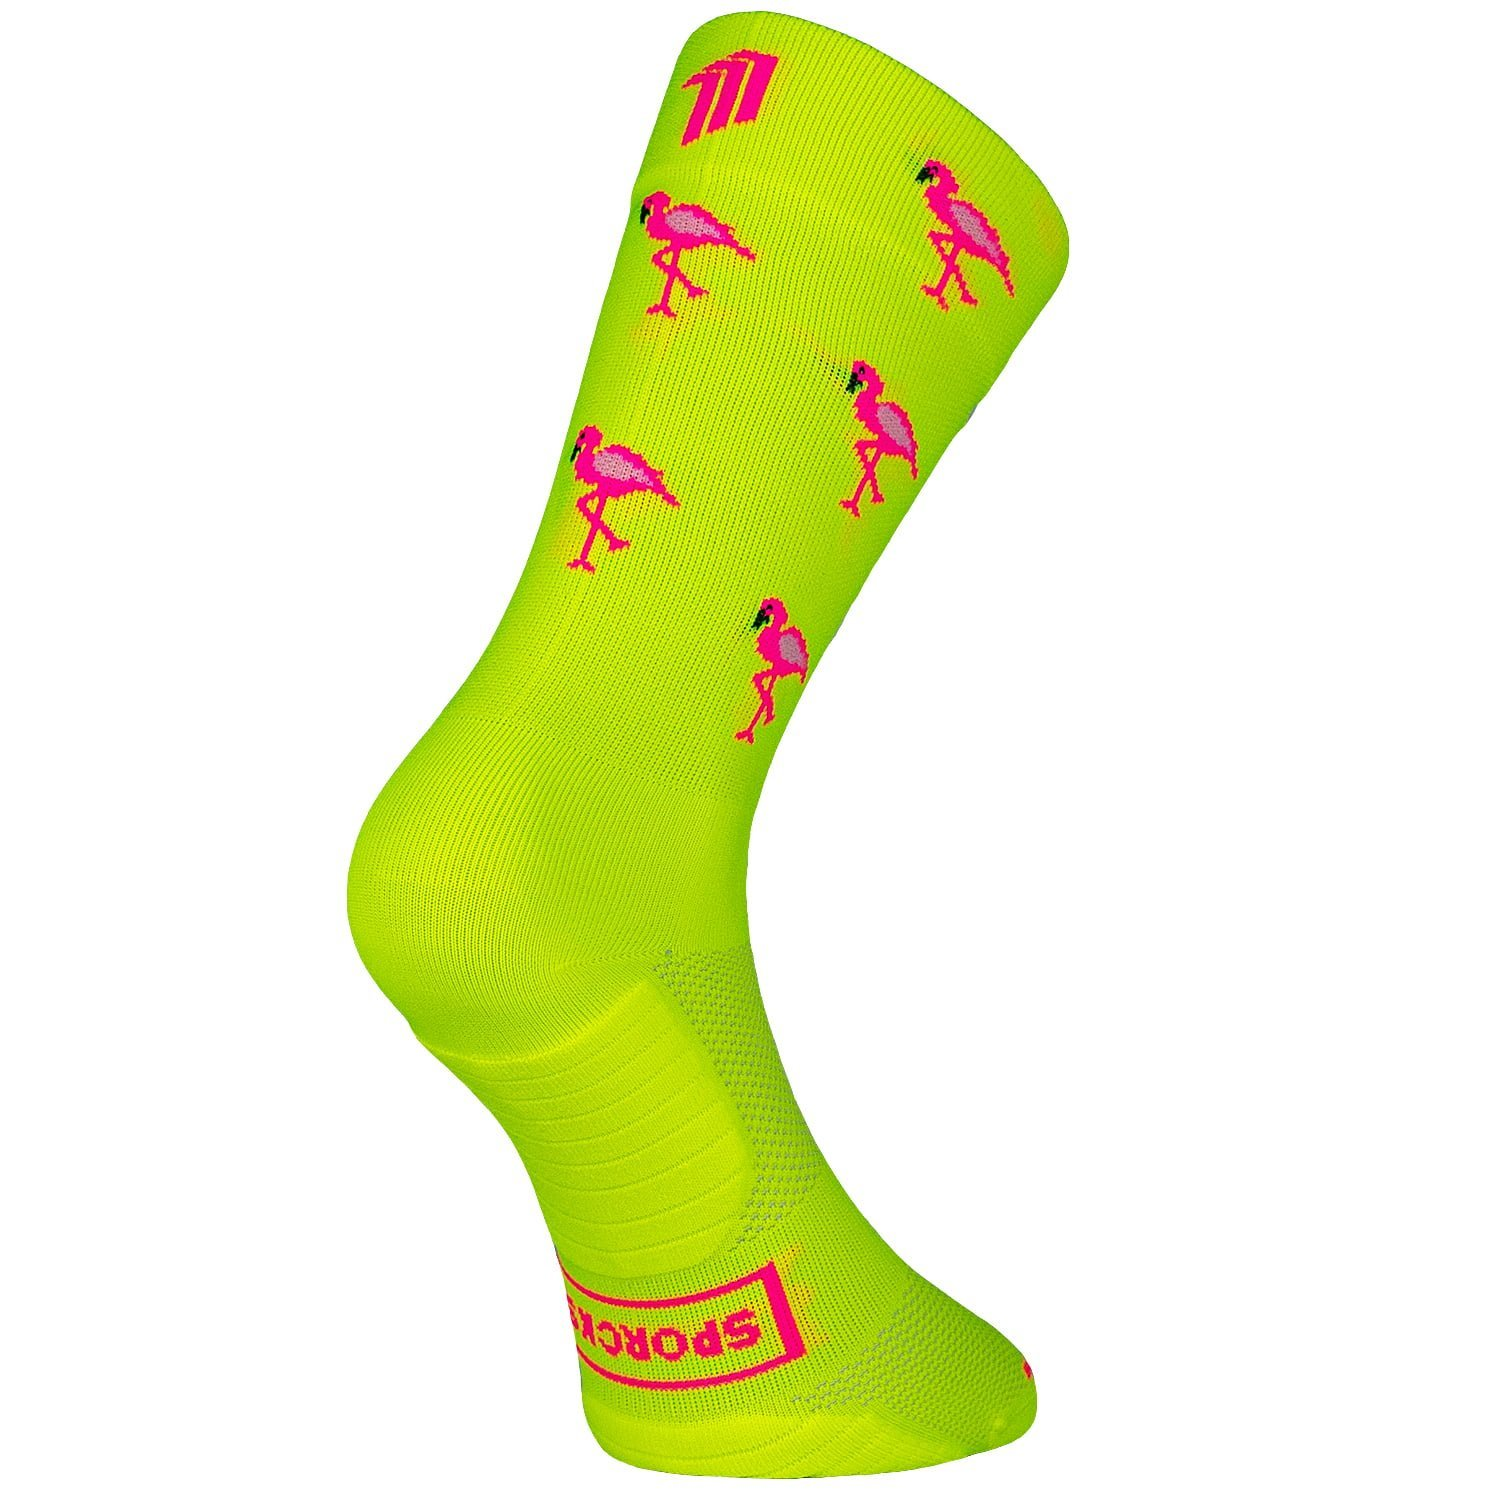 Flamingo Yellow II - Calcetín Ciclismo